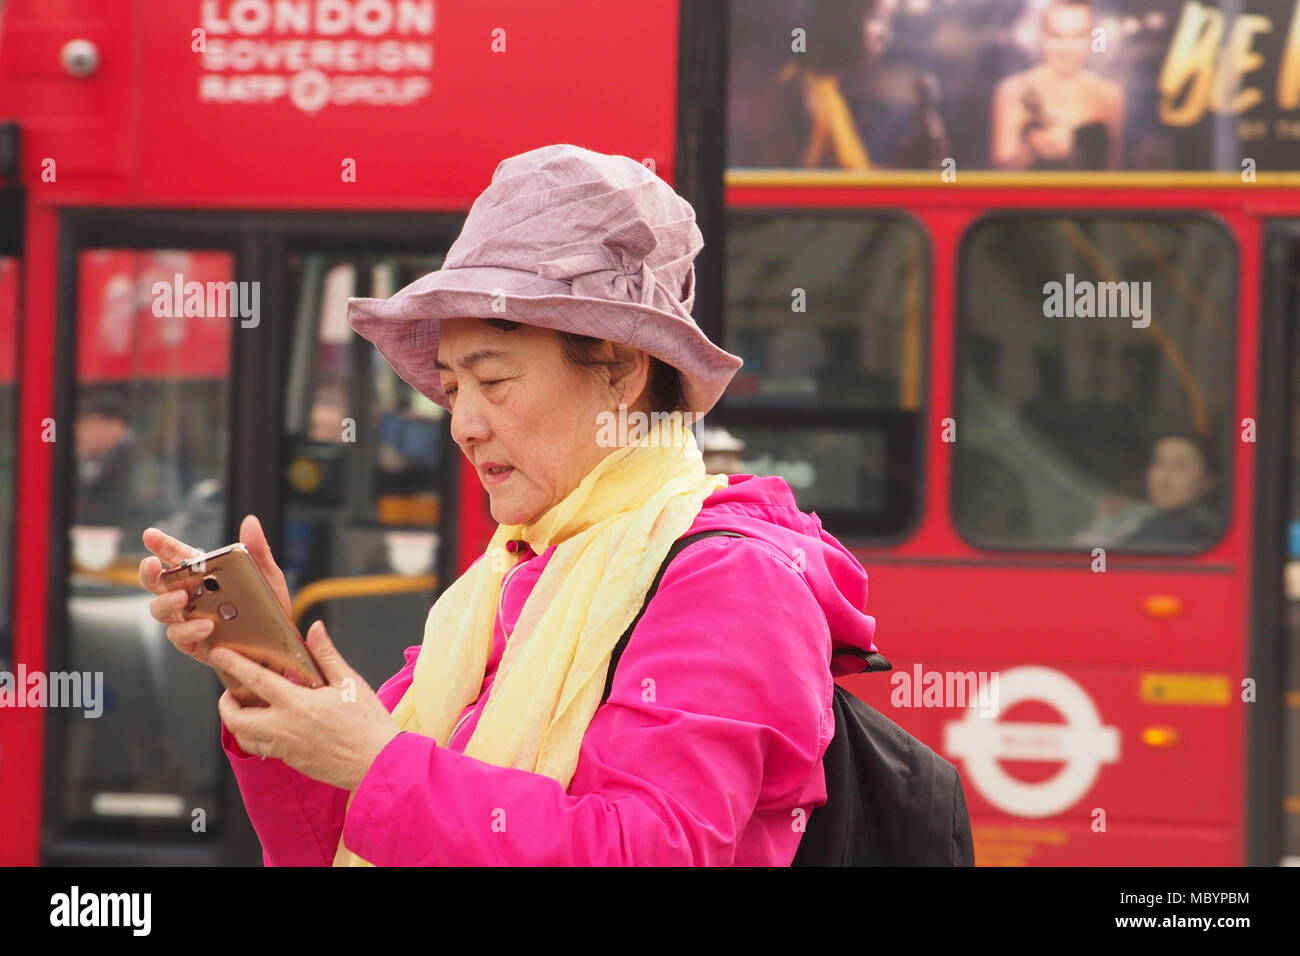 An older woman looking at her smartphone in Trafalgar Square, London wearing bright pink coat and hat and a yellow scarf with a bus in the background - Stock Image